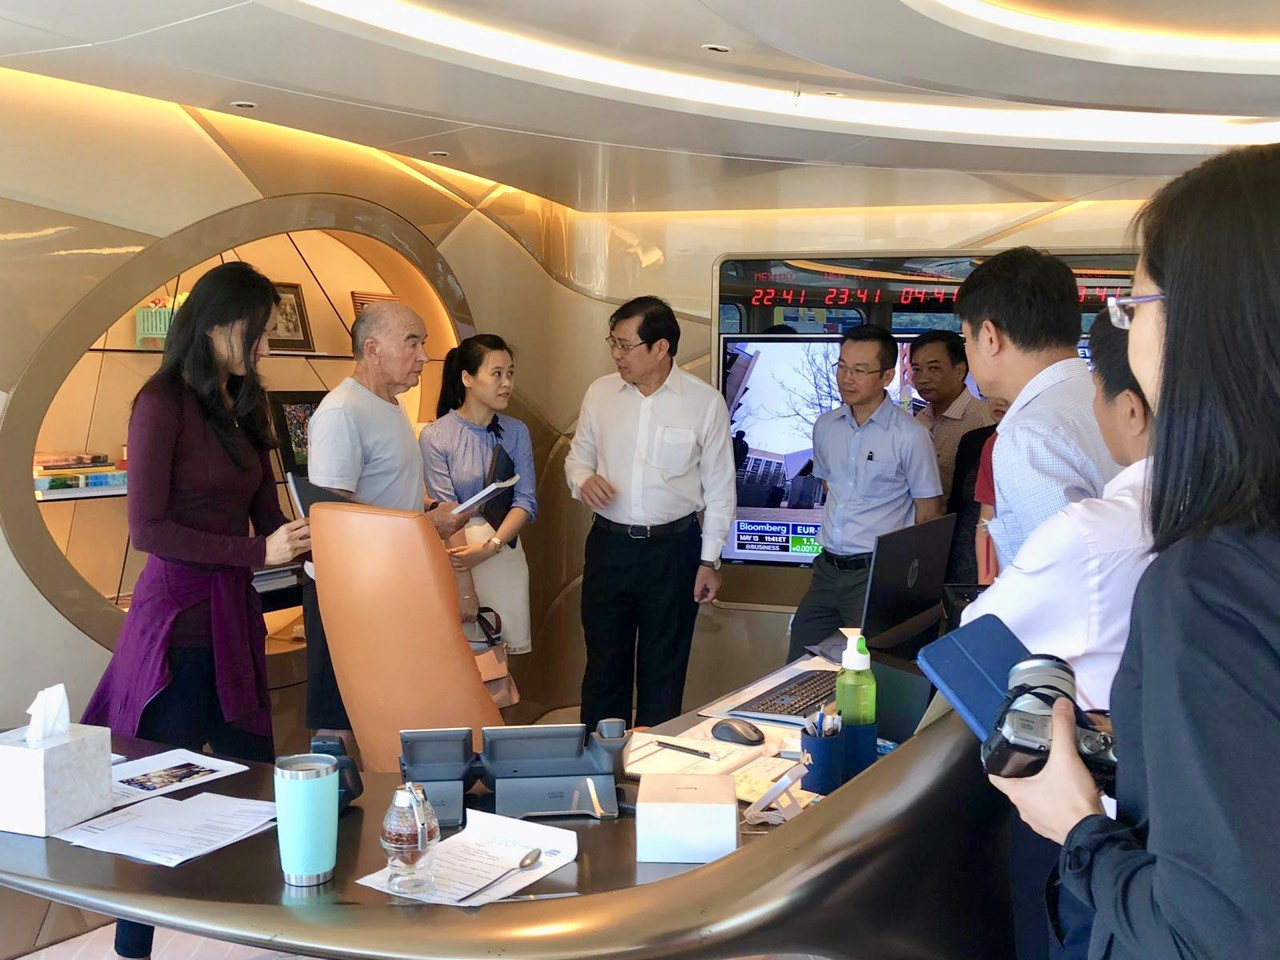 British businessman Joe Lewis receives Da Nang chairman Huynh Duc Tho on his superyacht Aviva during a stop in Da Nang, Vietnam in May 2019. Photo: SEPTIMIU